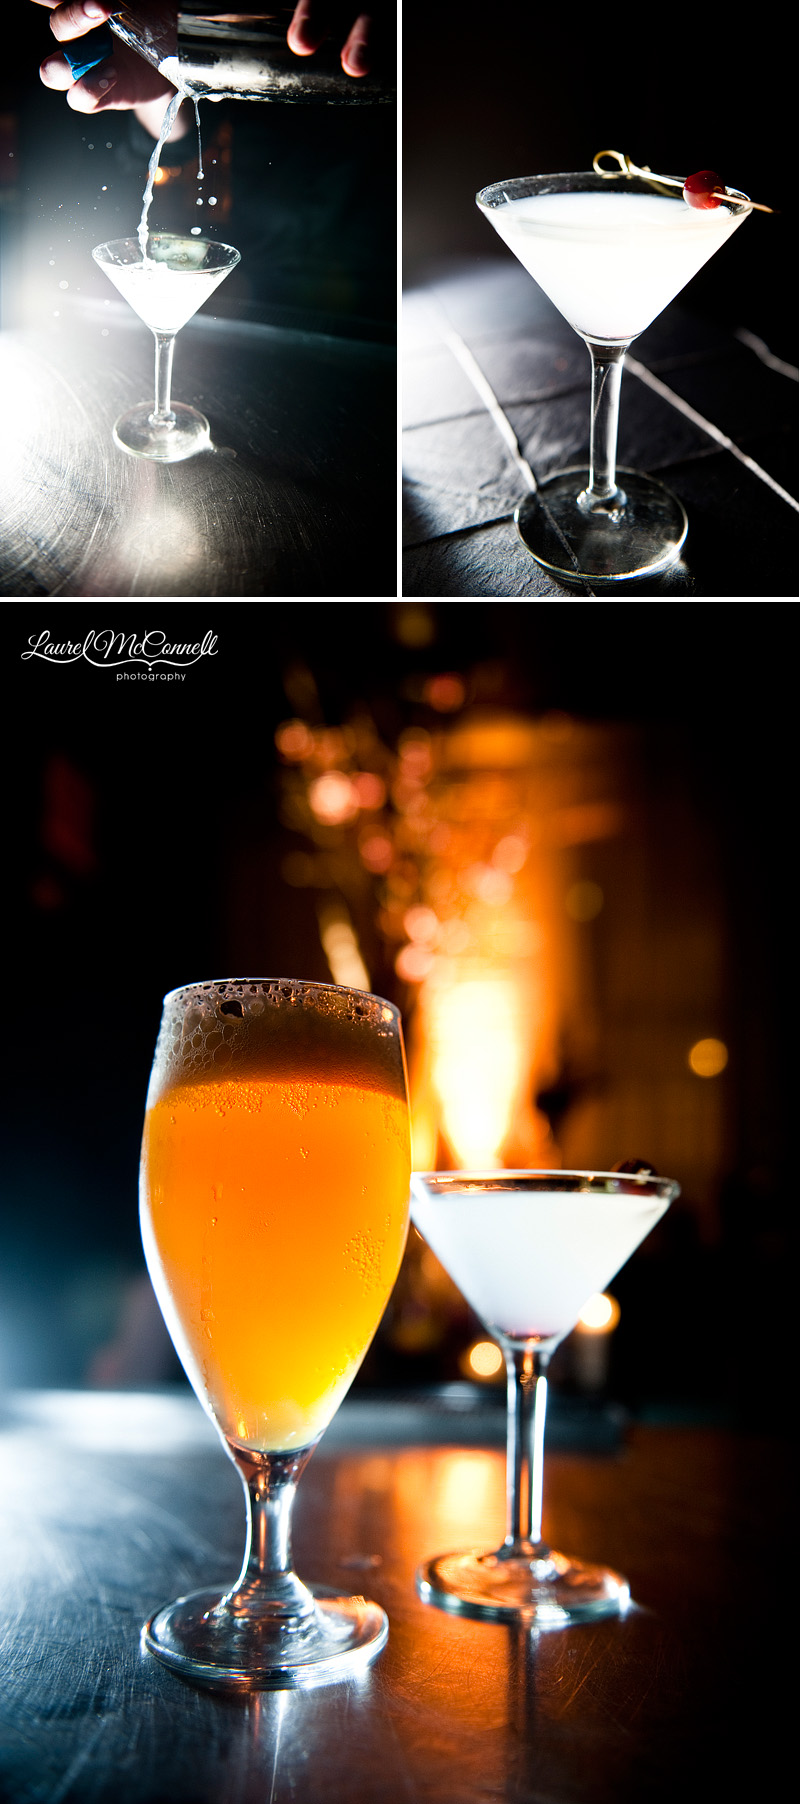 signature cocktails for a wedding at the palace ballroom in seattle, a microbrew beer and a cherry blossom martini